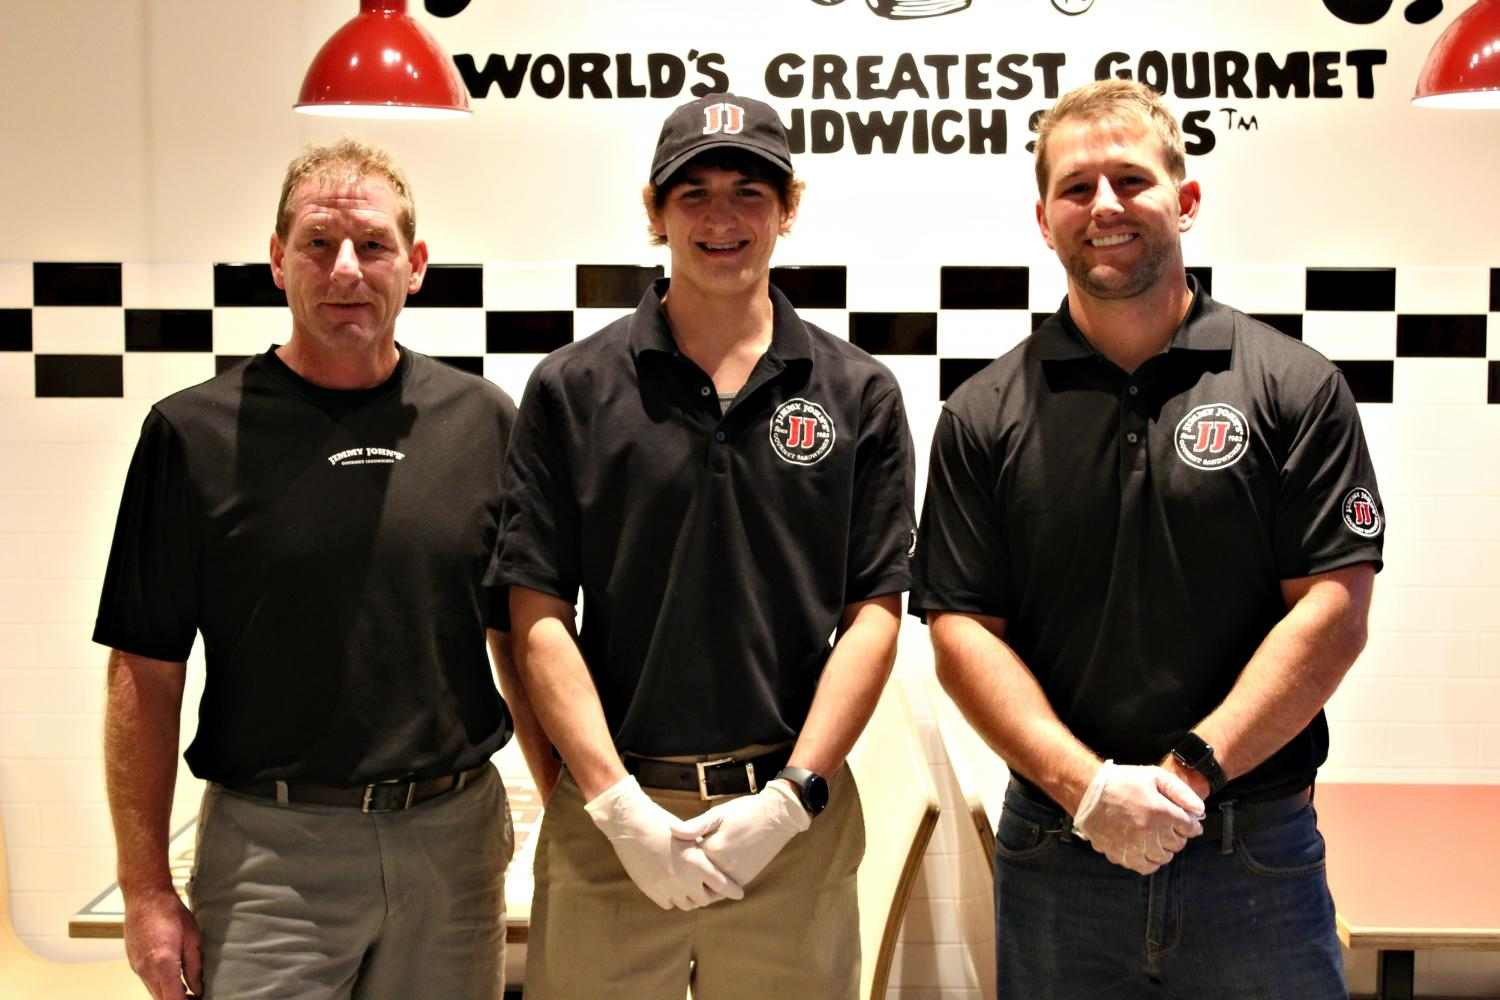 Rick Hartwig, General Manager; Alex Wright, Certified Manager; and Houston Hartwig, Owner